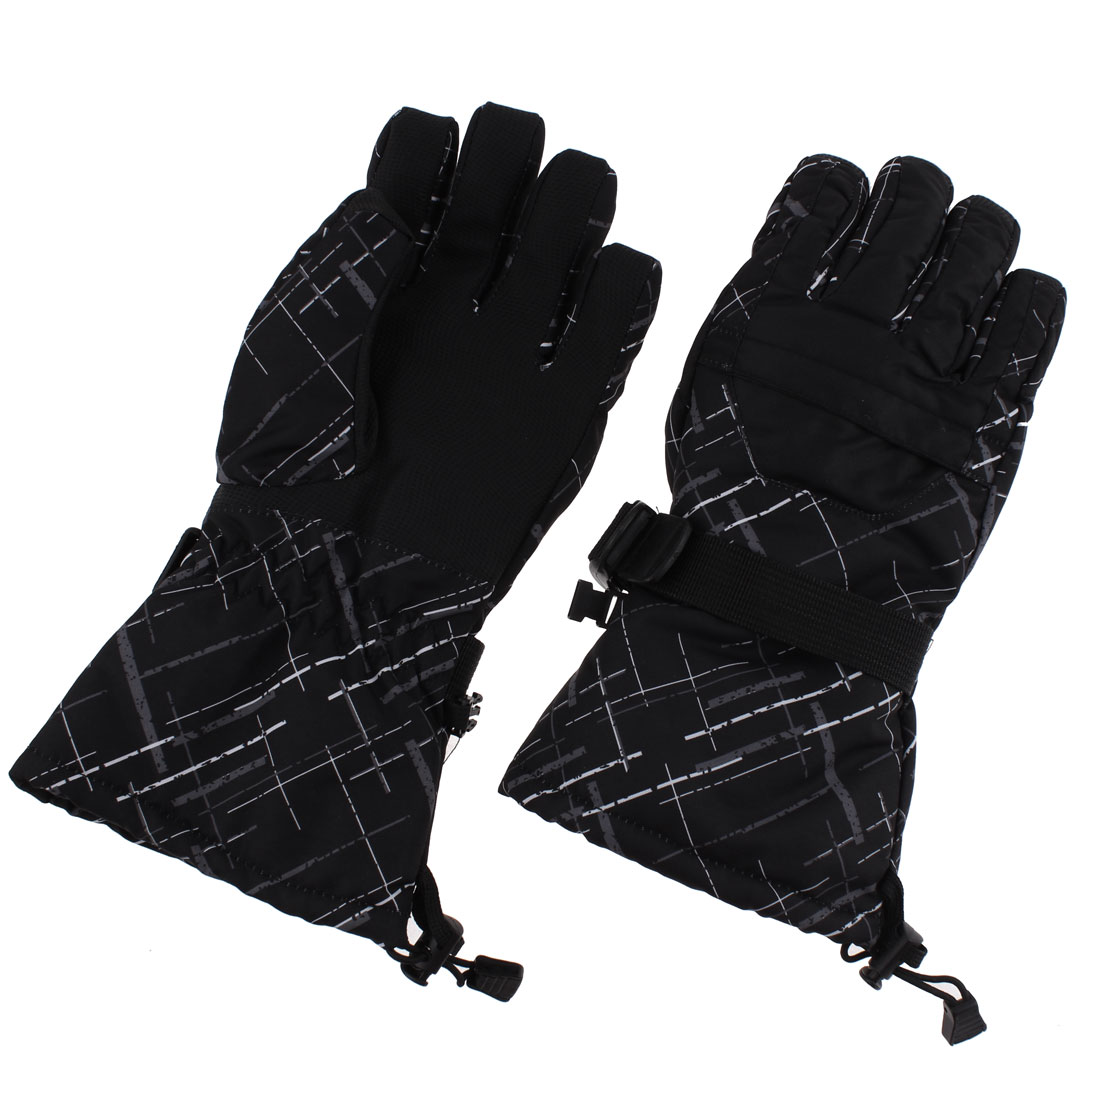 Women Winter Outdoor Ski Snowboard Full Finger Gloves Black Graffiti M Pair